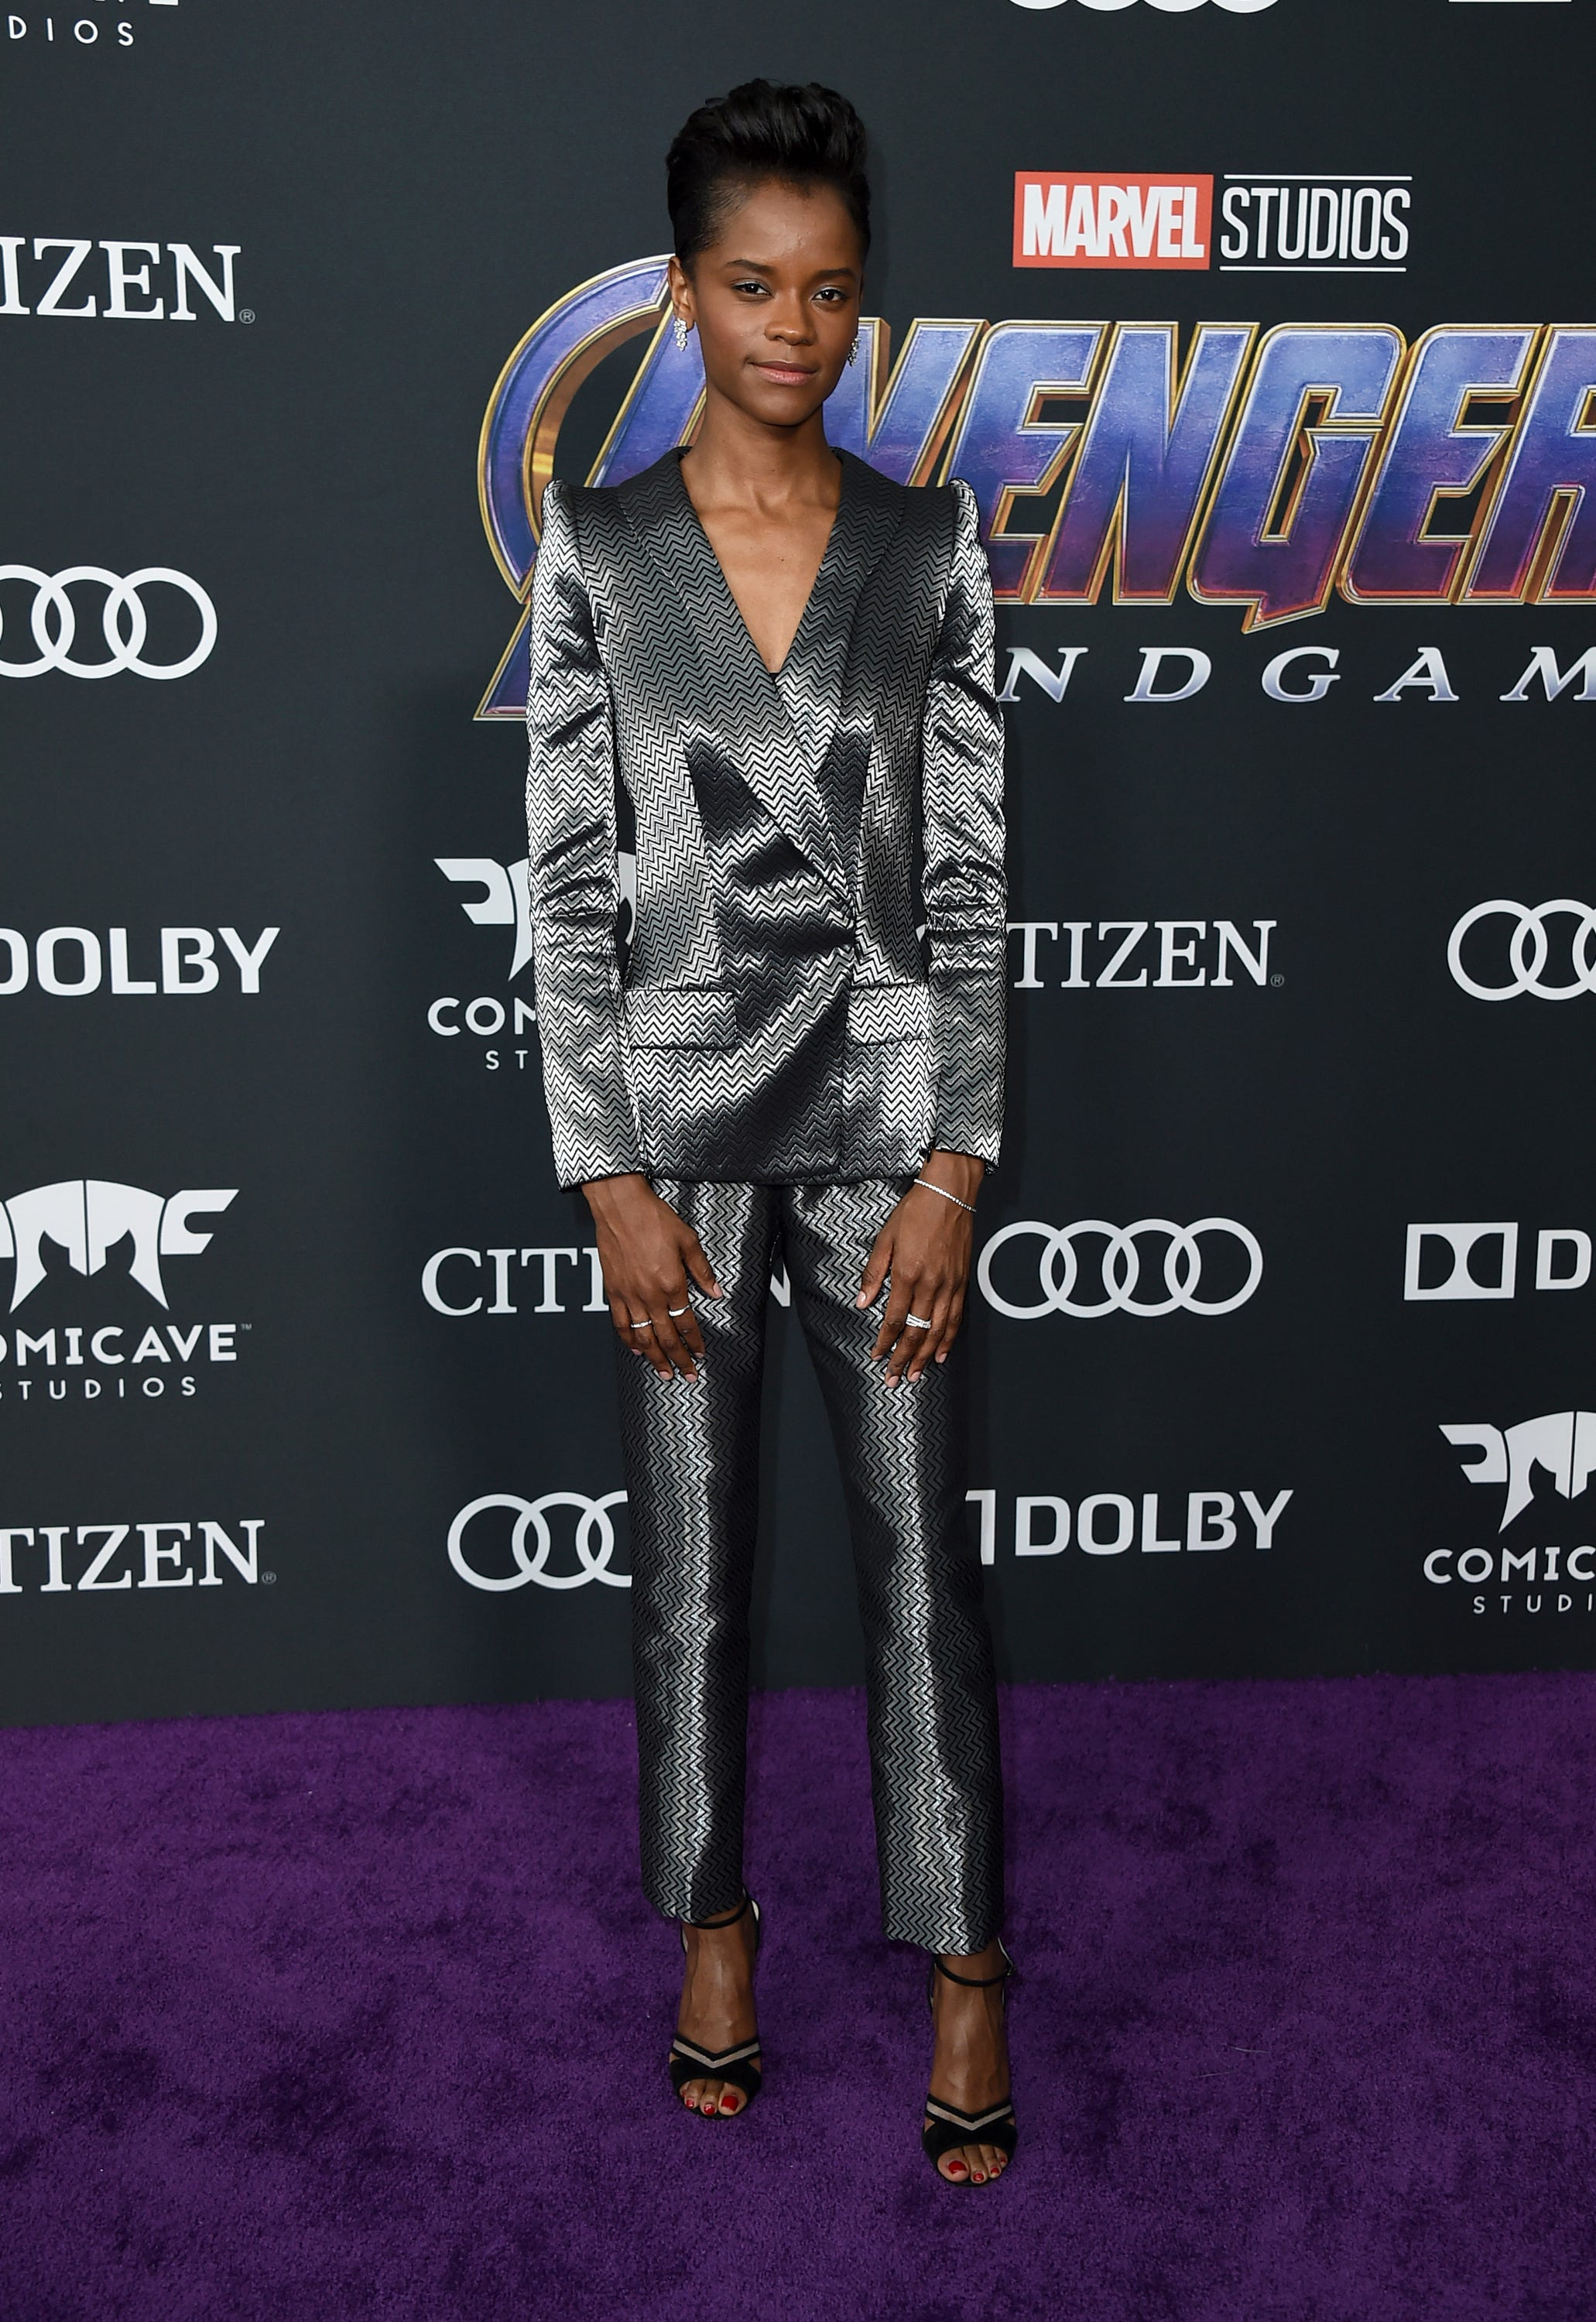 'Black Panther' star Letitia Wright tweets controversial vaccine video, says she's being canceled